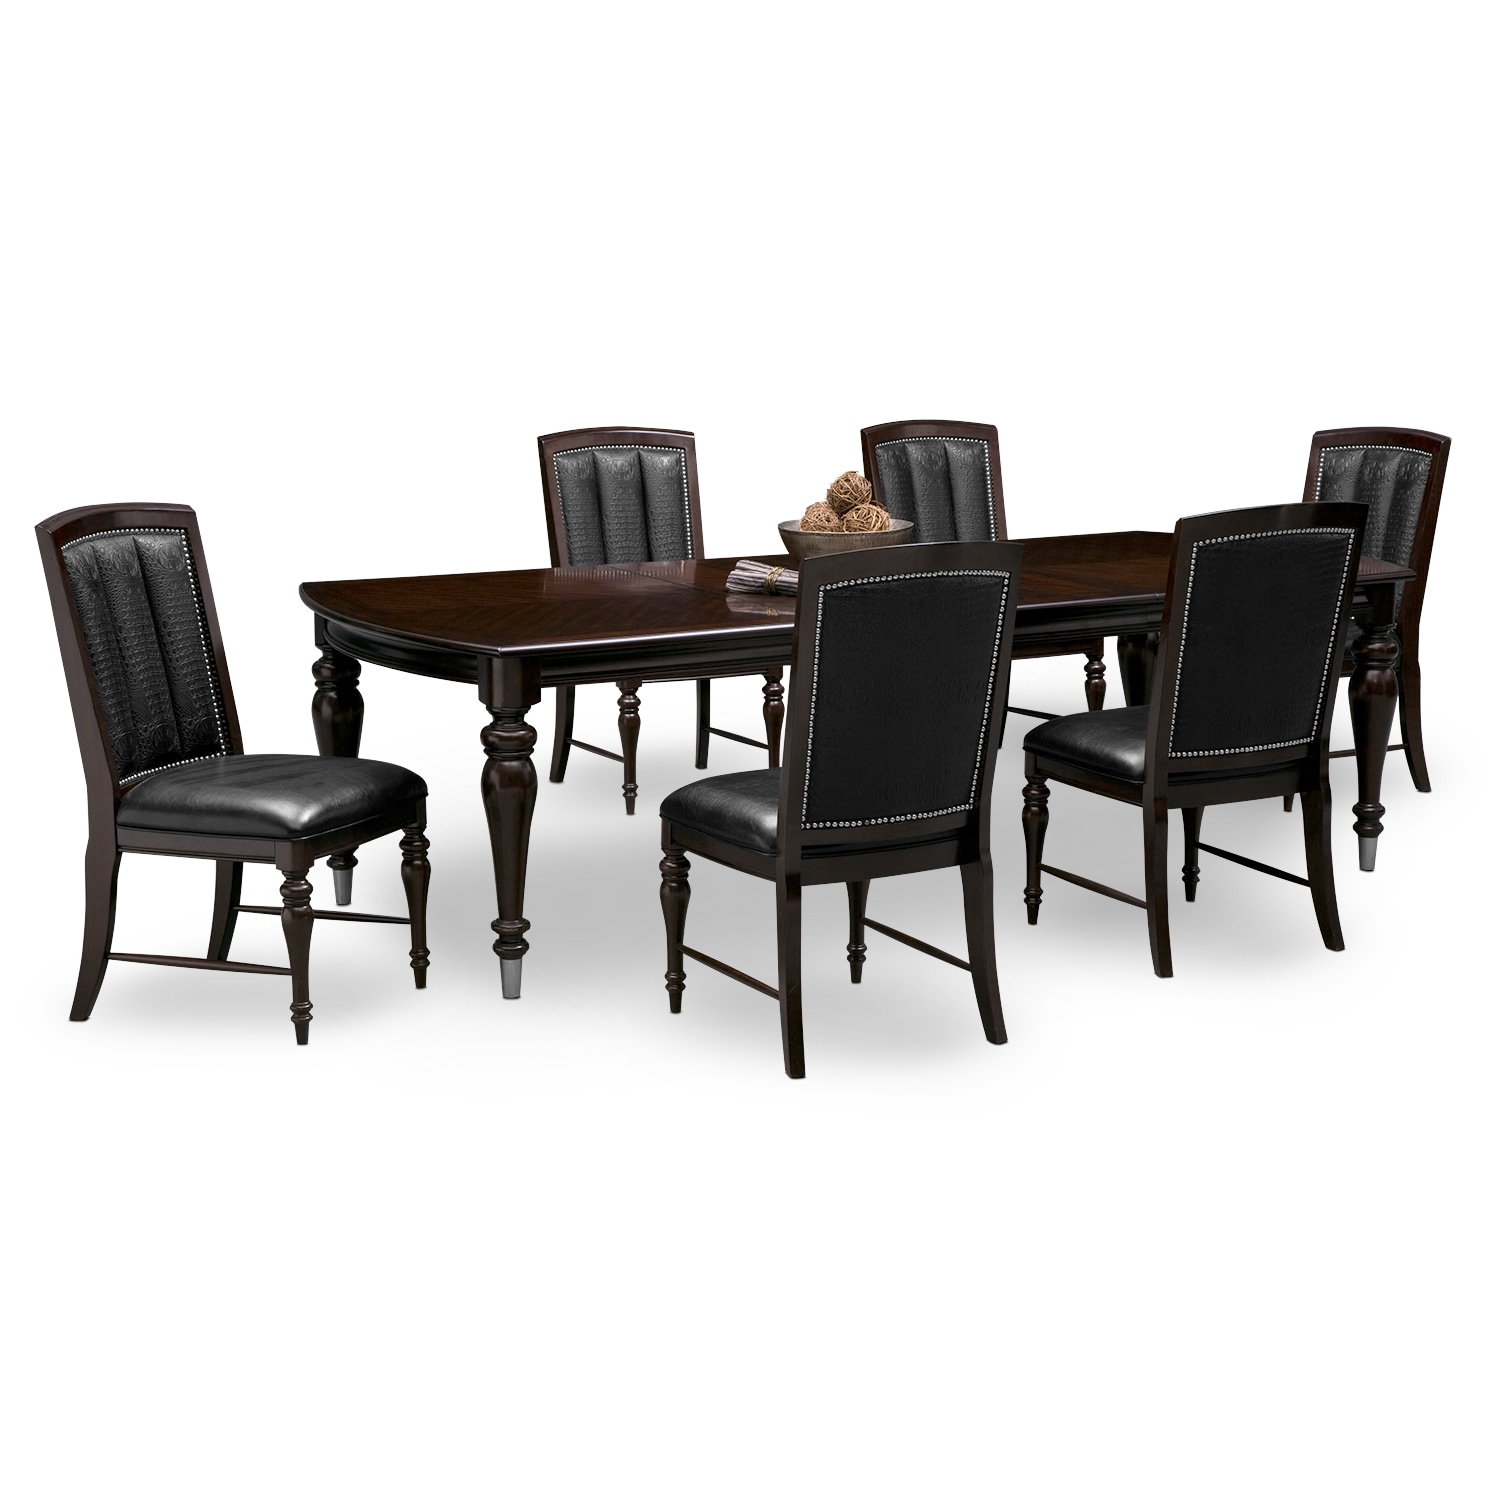 Was $1,549.93 Today $1,394.94 Esquire Table And 6 Chairs   Cherry By American  Signature